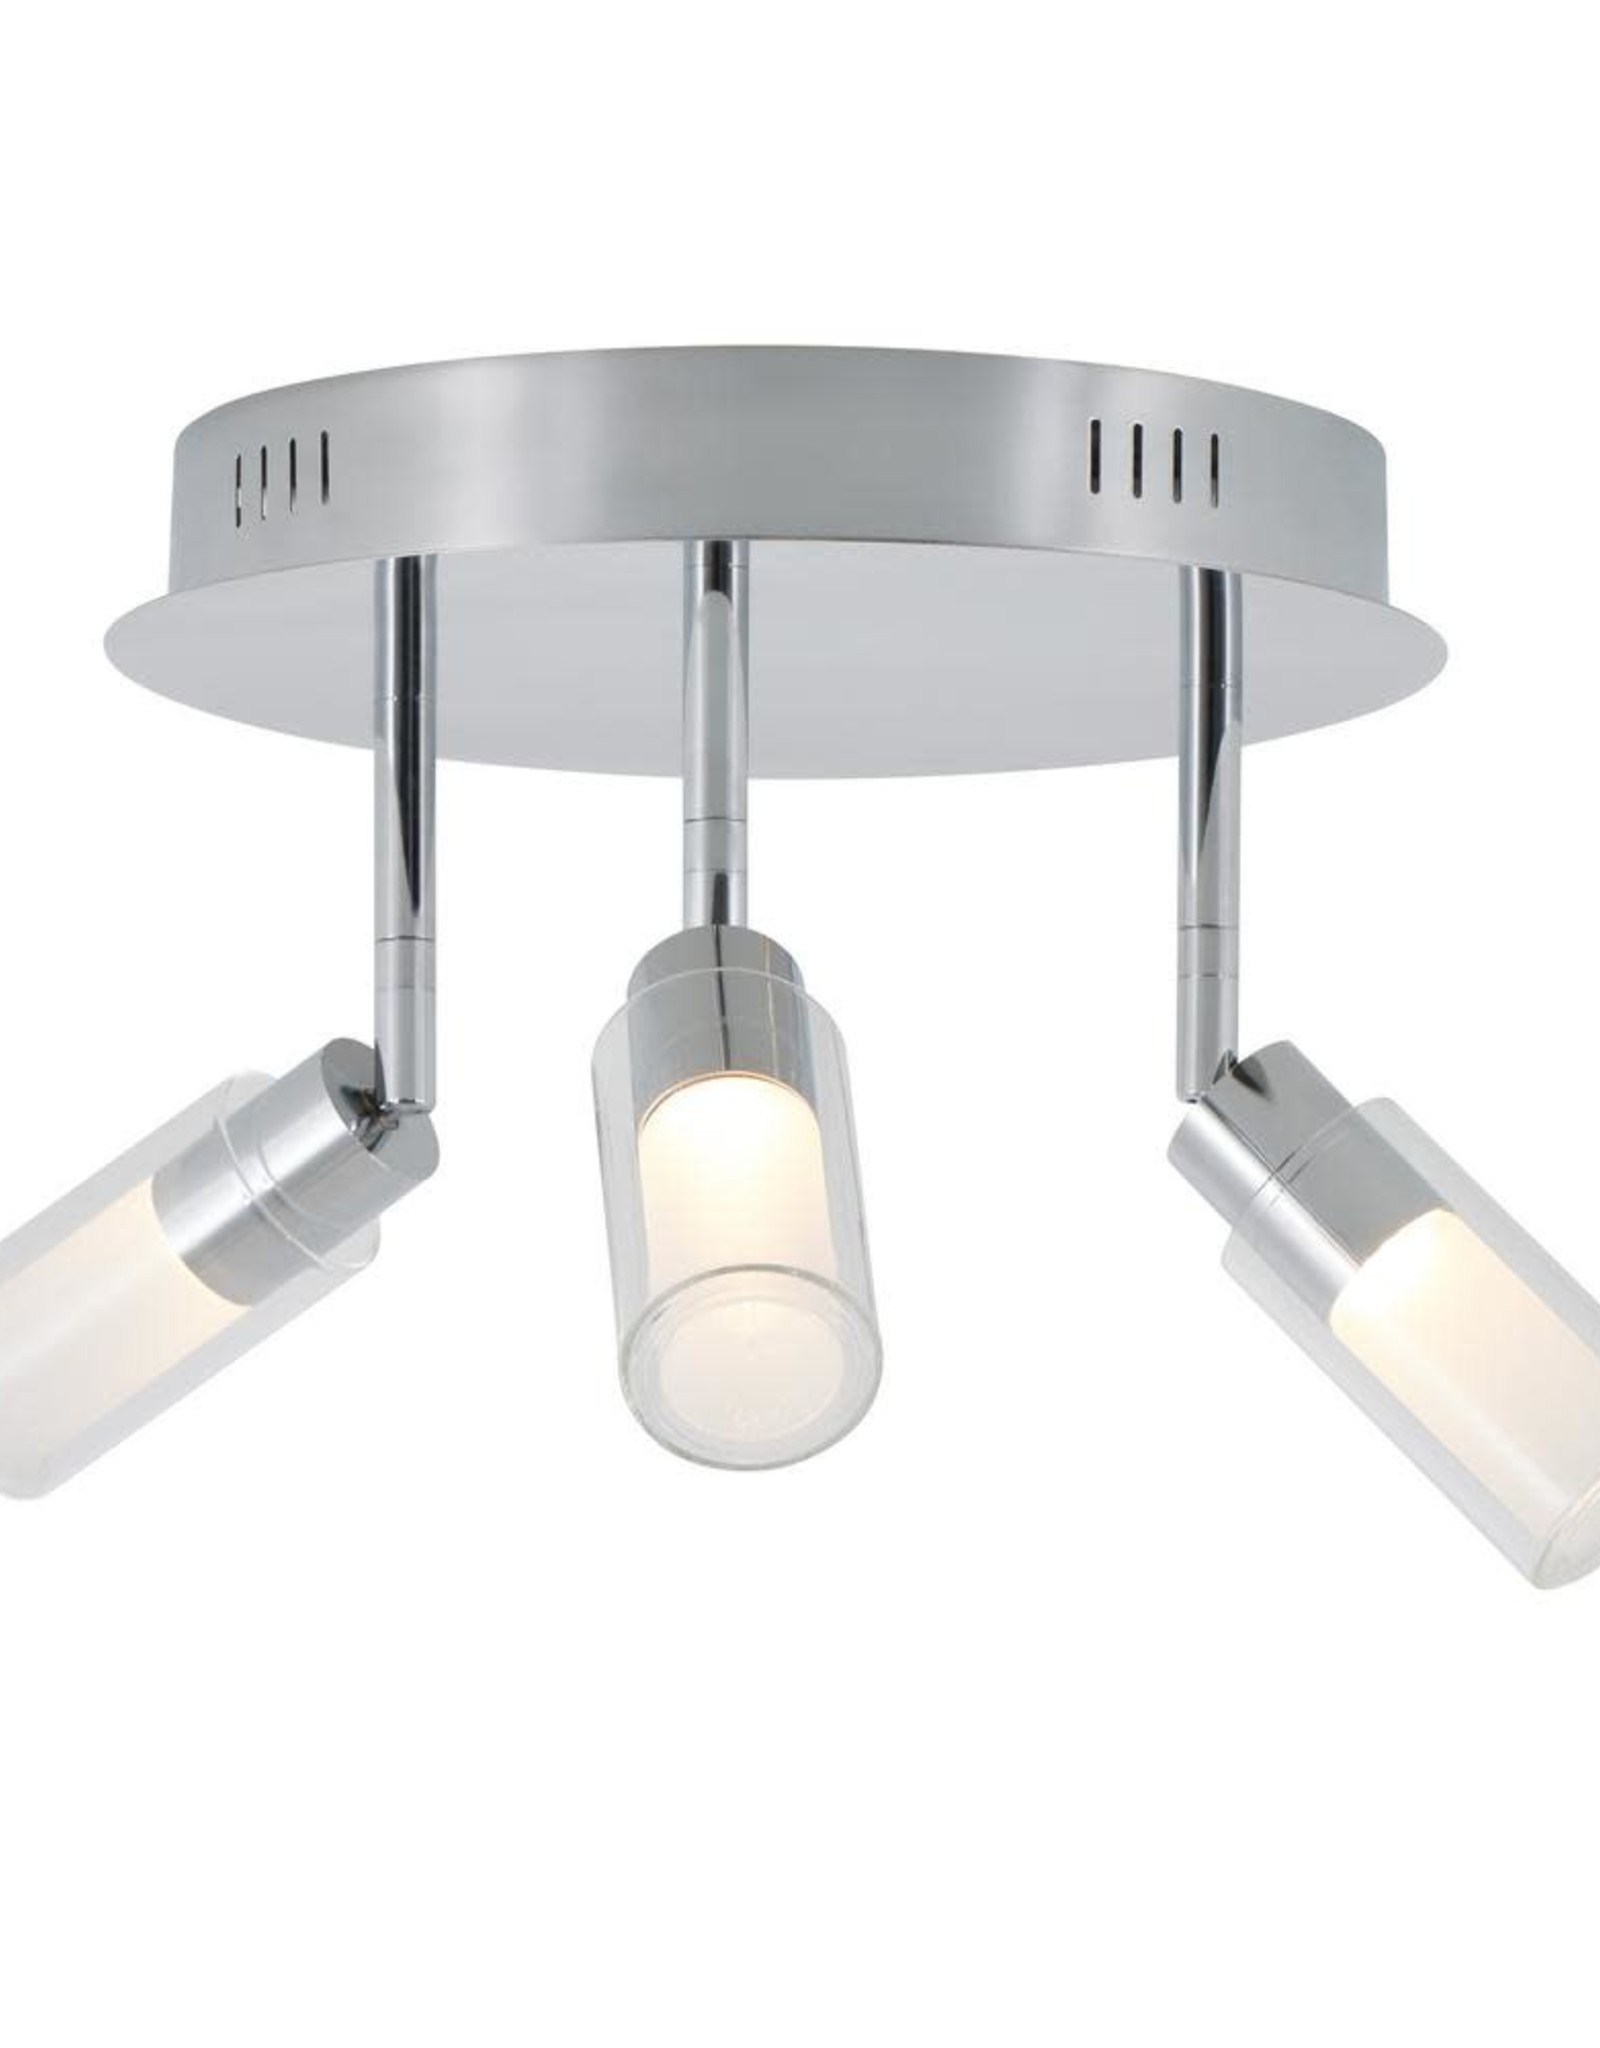 Matrix Sky 10.8 in. 3-Light Chrome LED Semi-Flush Mount